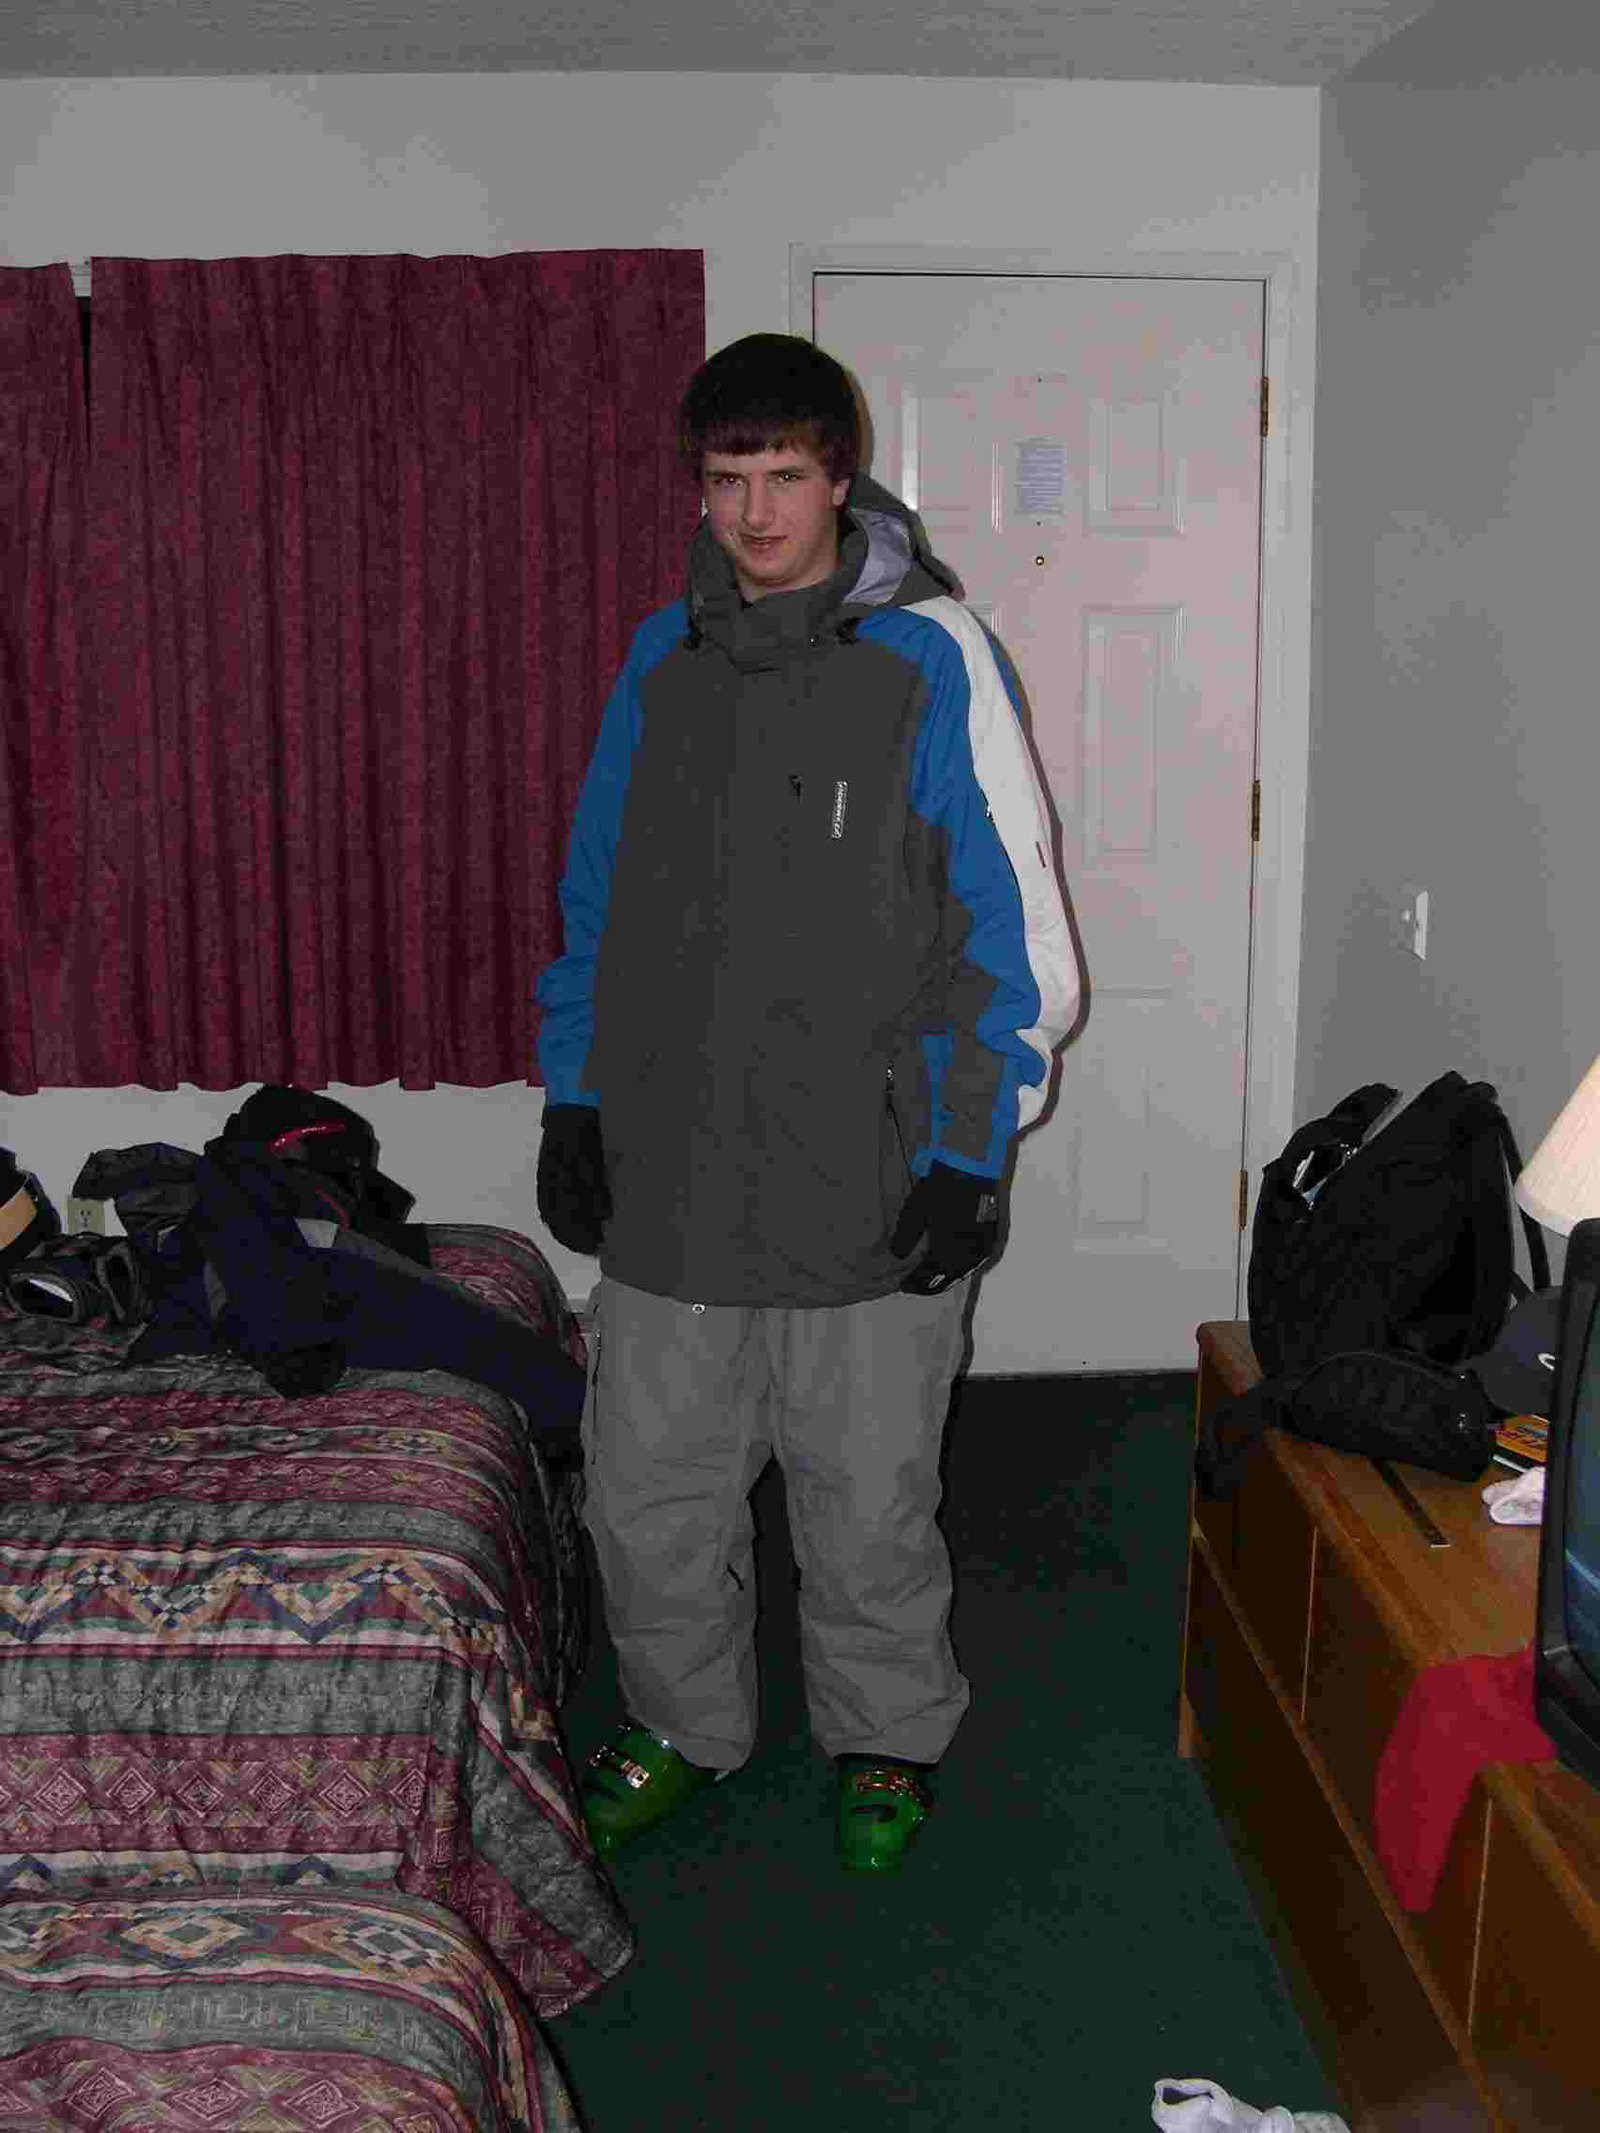 This is me trying on my stuff after I just got it that day